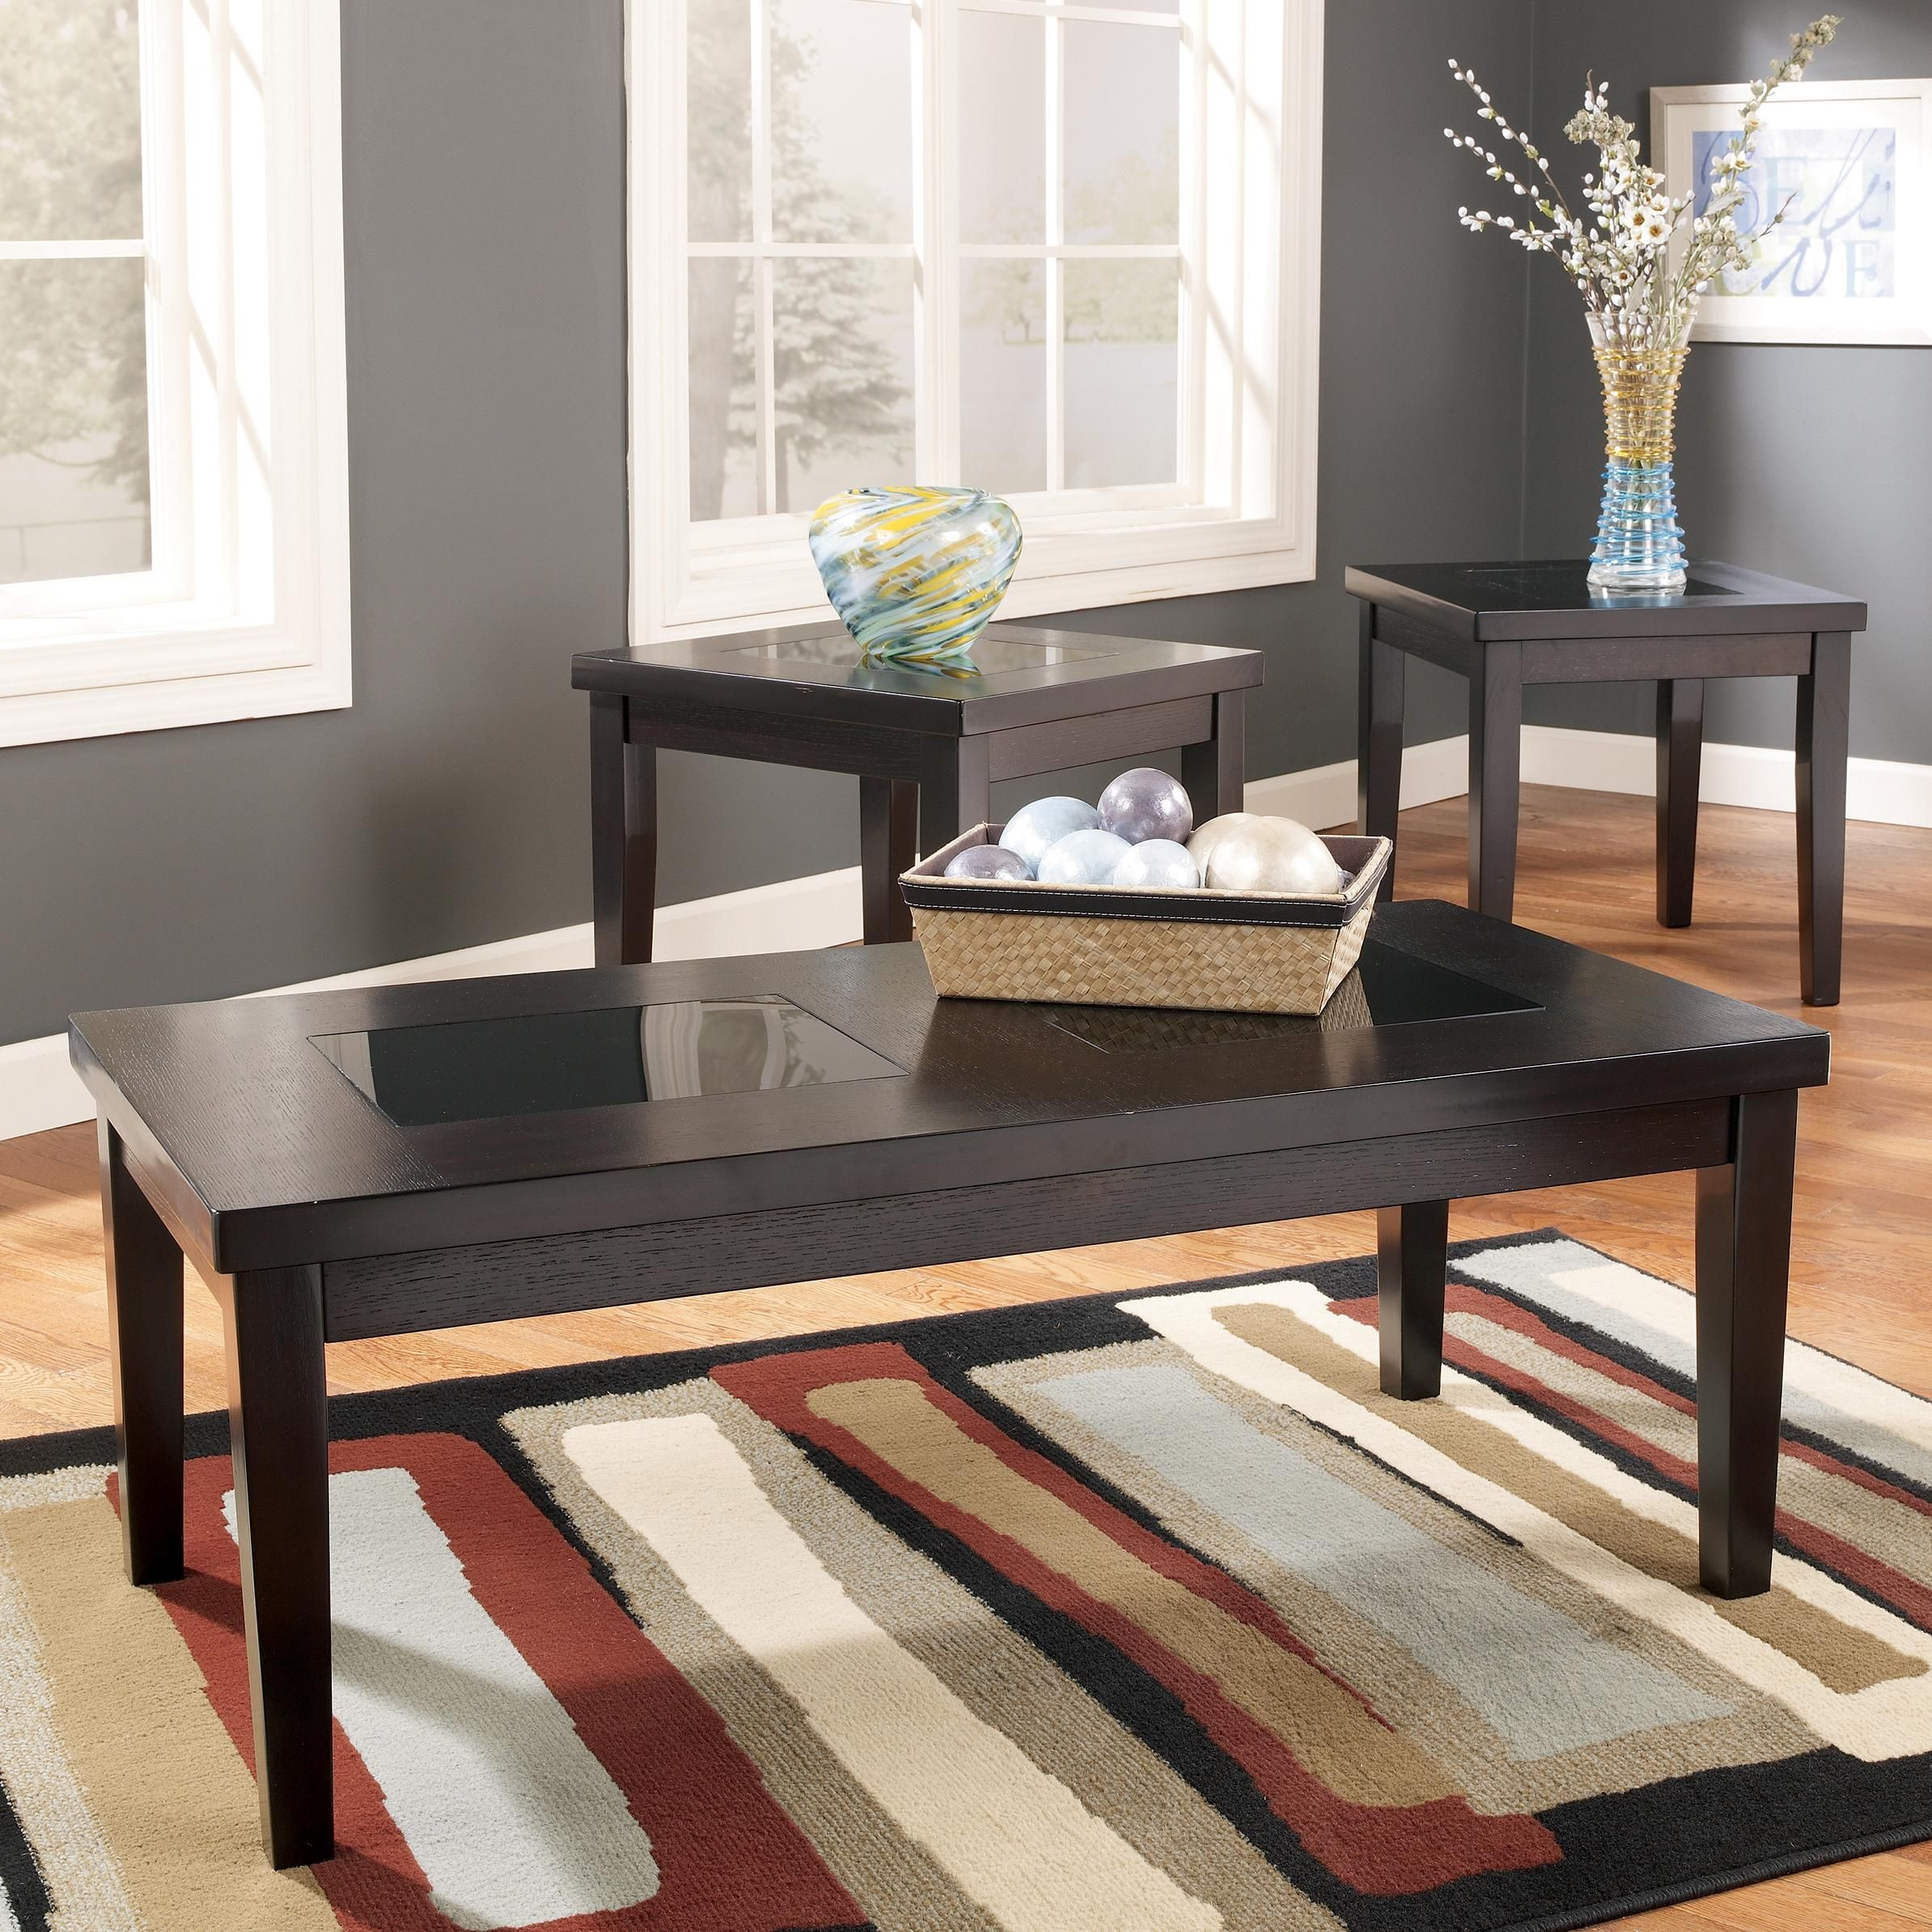 Denja 3 In 1 Pack Occasional Tables With Black Glass Insert Tops By Signature Design By Ashley At Value City Furniture Coffee Table Coffee And End Tables 3 Piece Coffee Table Set [ 2388 x 2388 Pixel ]